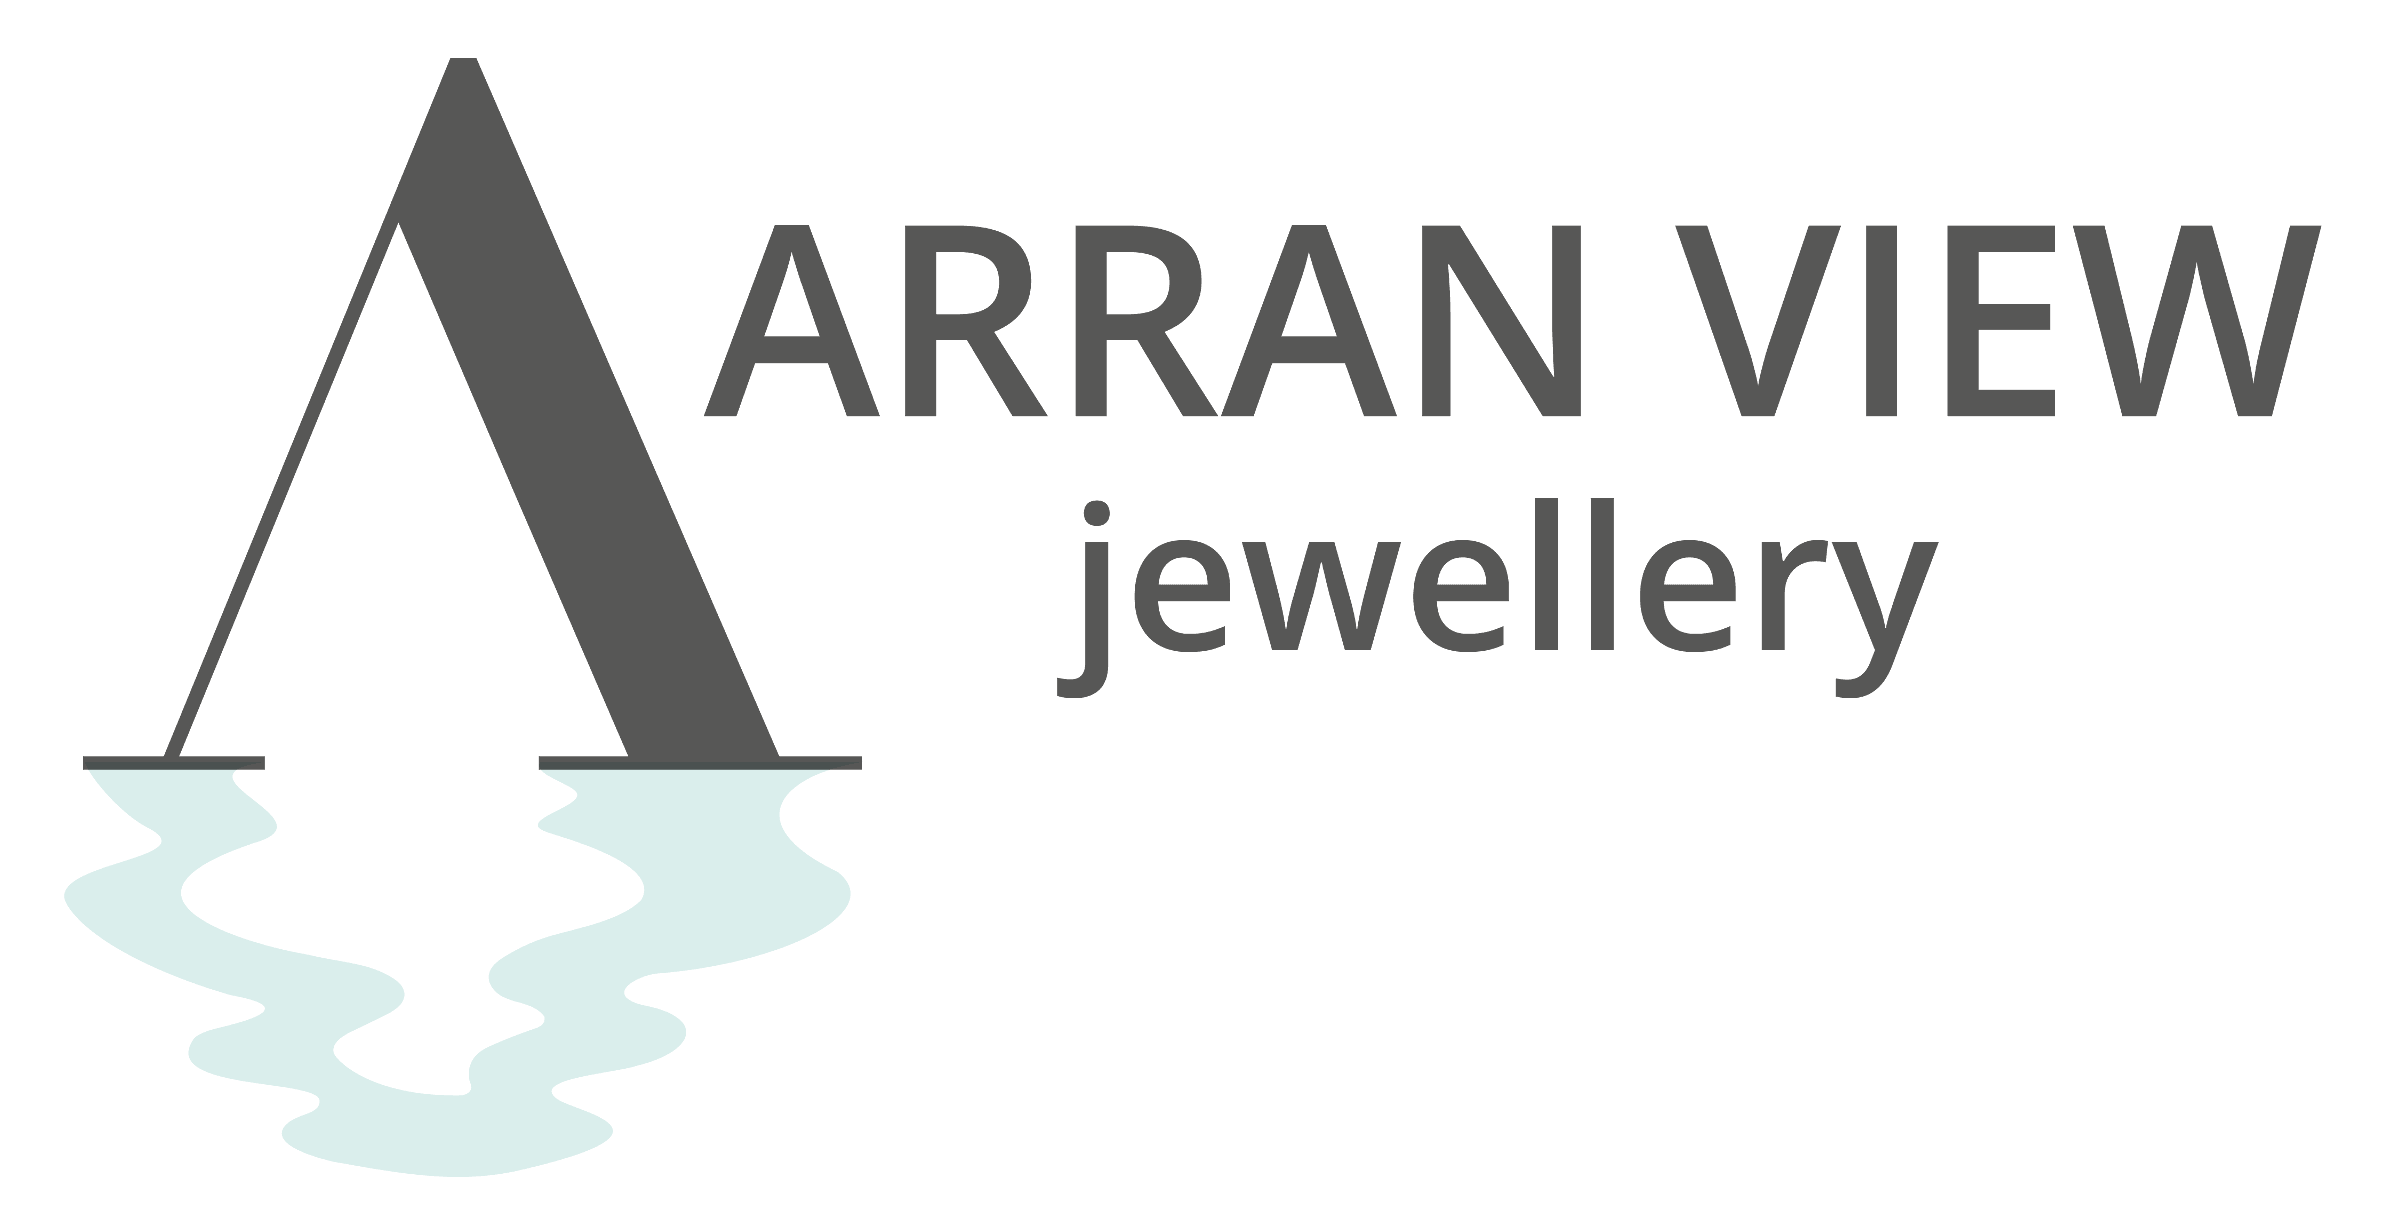 arranview jewellery logo landscape